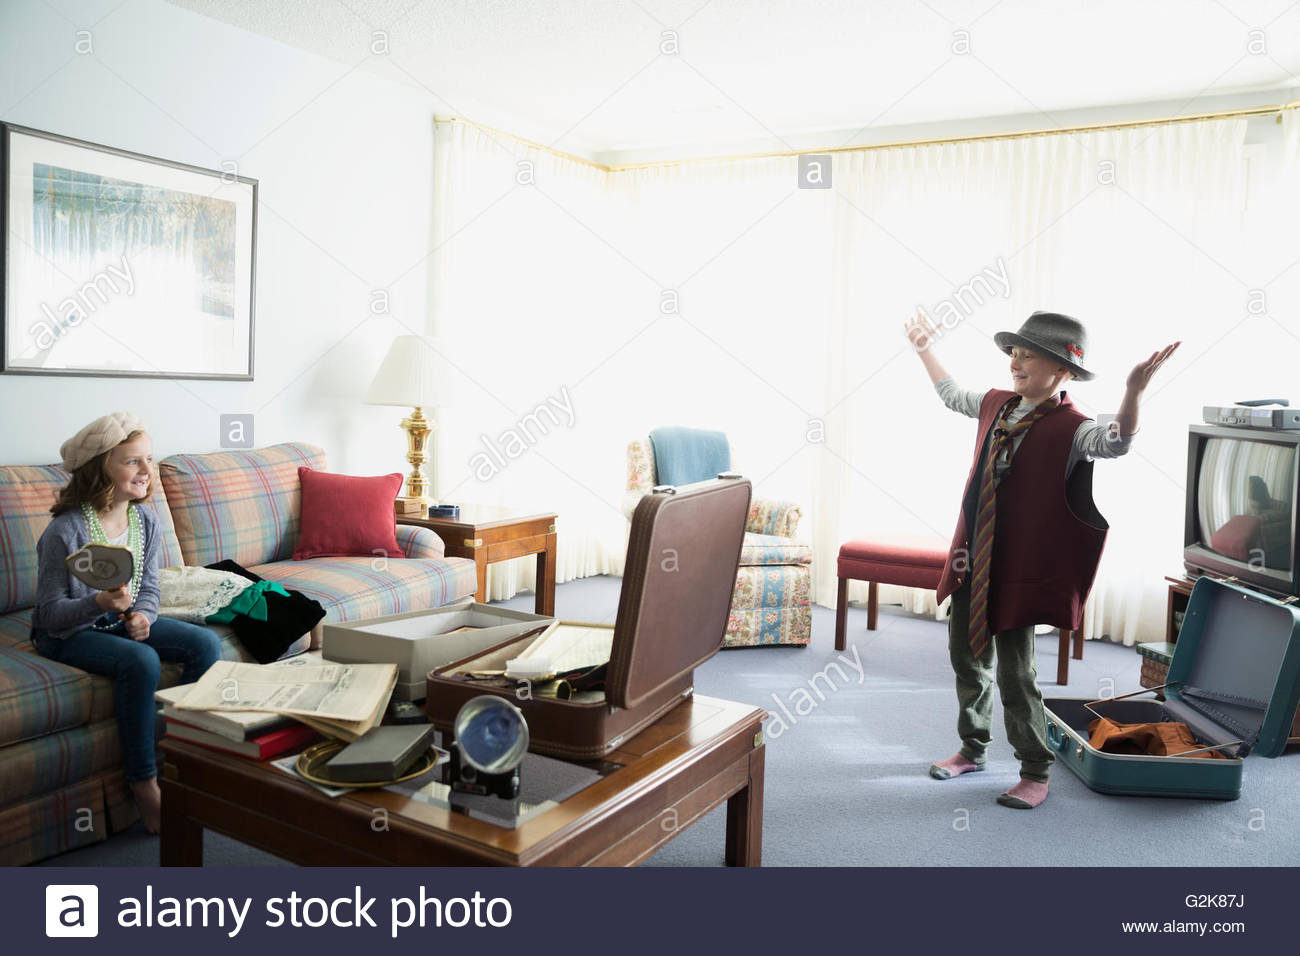 Brother and sister playing with old memorabilia in living room - Stock Image